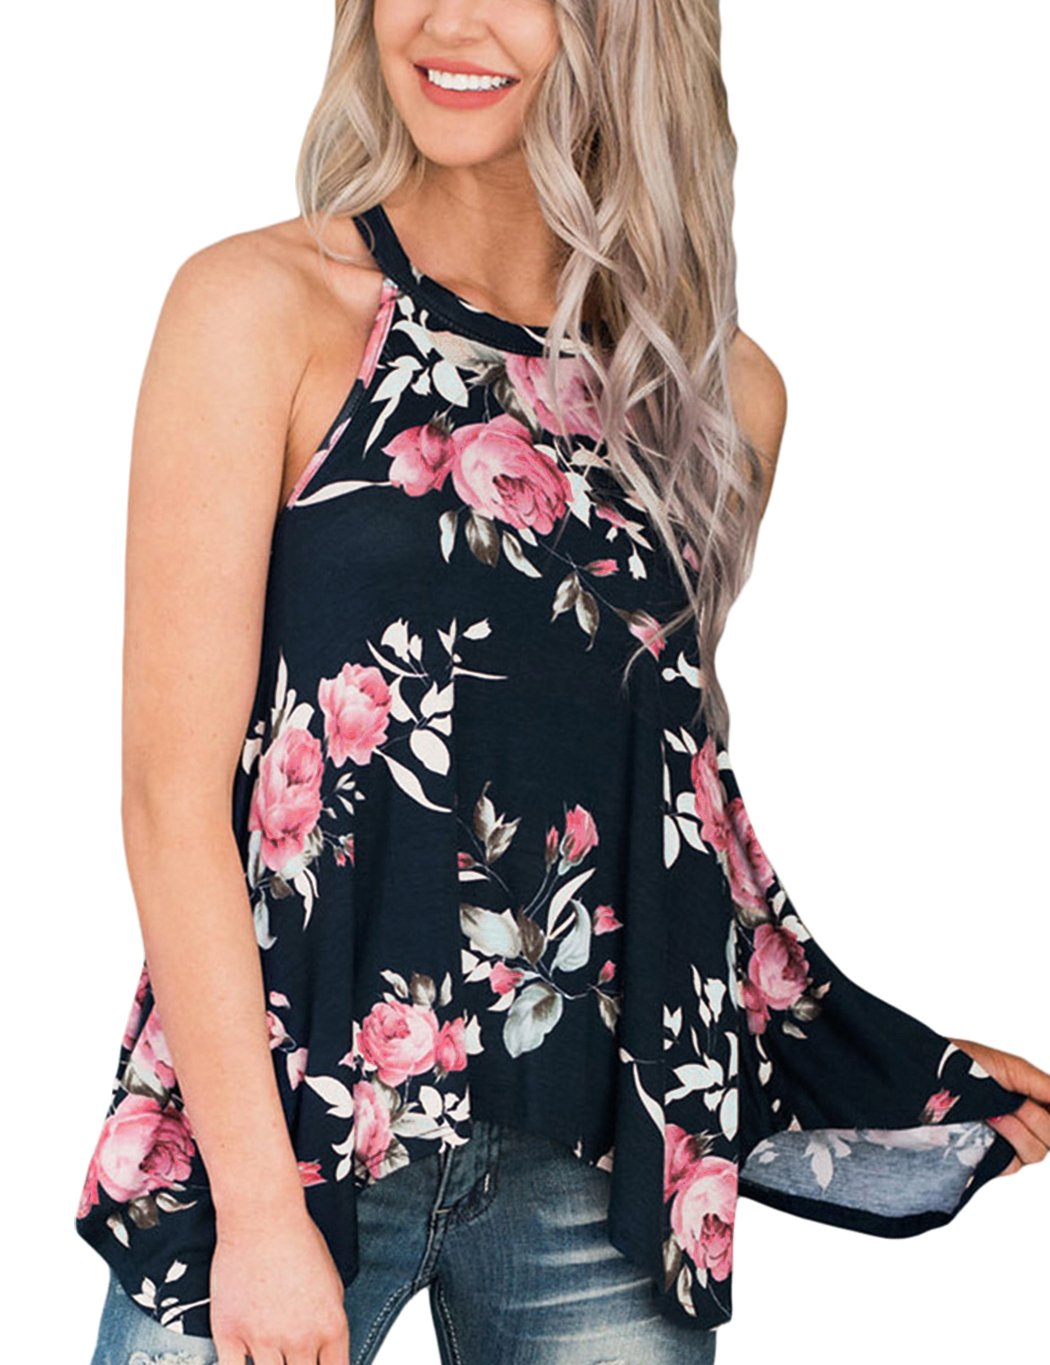 LitBud Womens Summer Tank Top for Women Ladies Floral Halter Spaghetti Strap Cami Loose Tee Casual T Shirts Flowy Halter Basic Tunic Tops Blouse Black Size 4 6 S